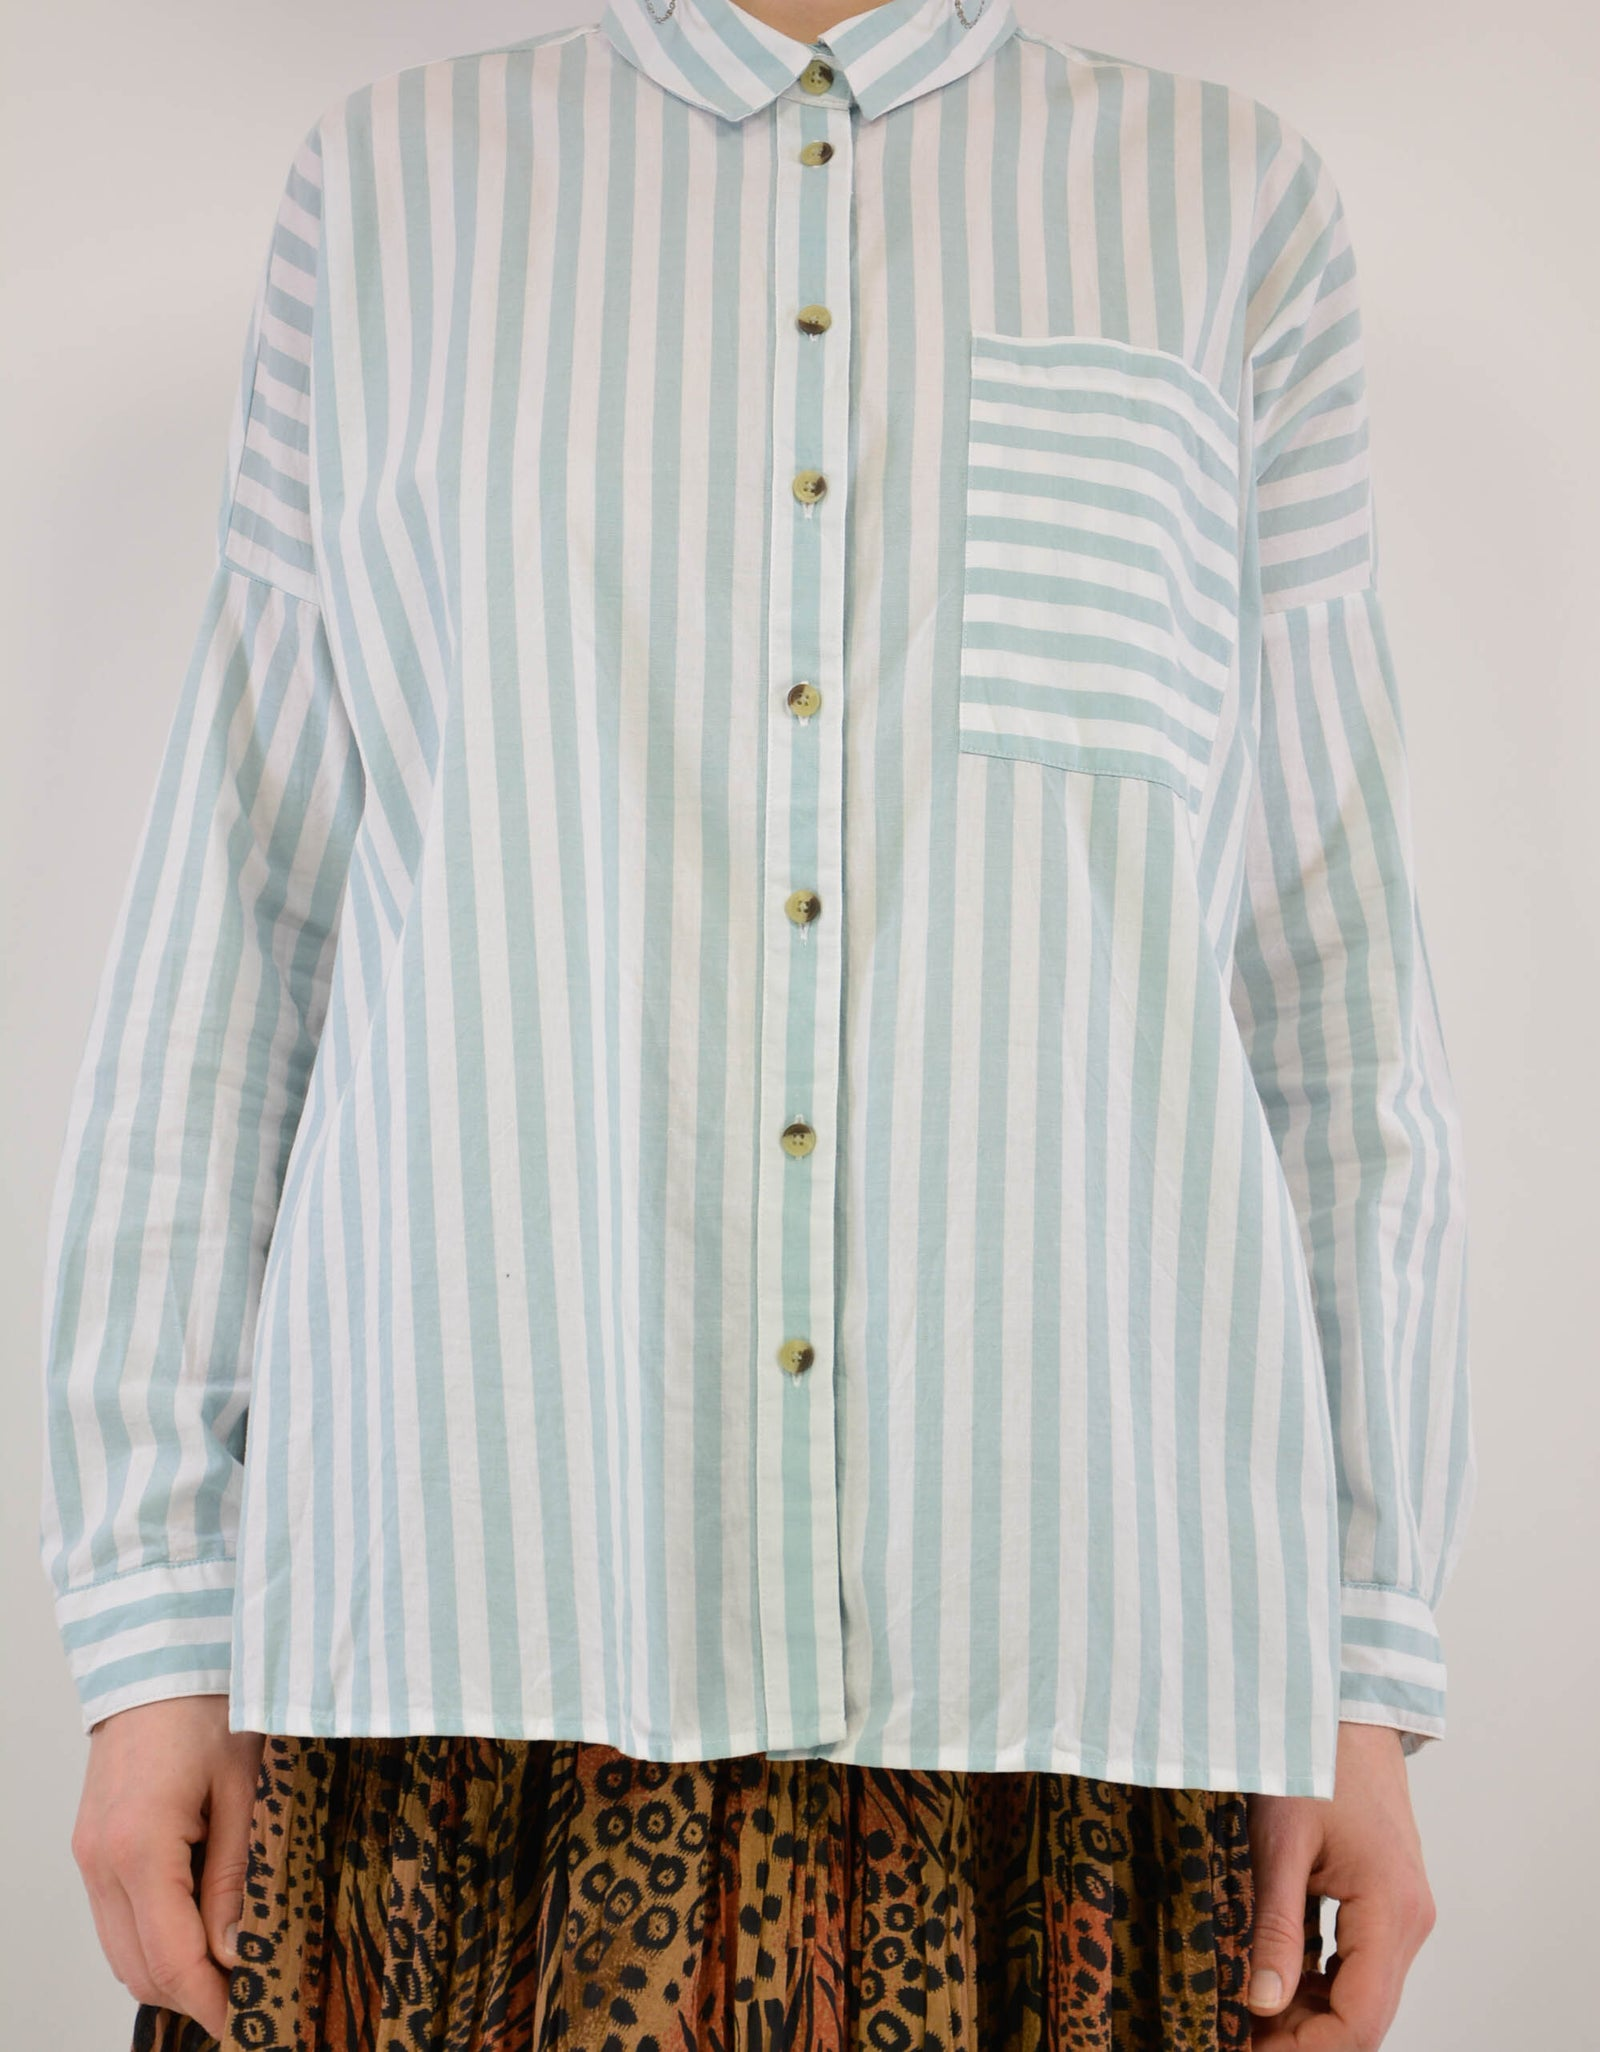 Striped blouse - PICKNWEIGHT - VINTAGE KILO STORE